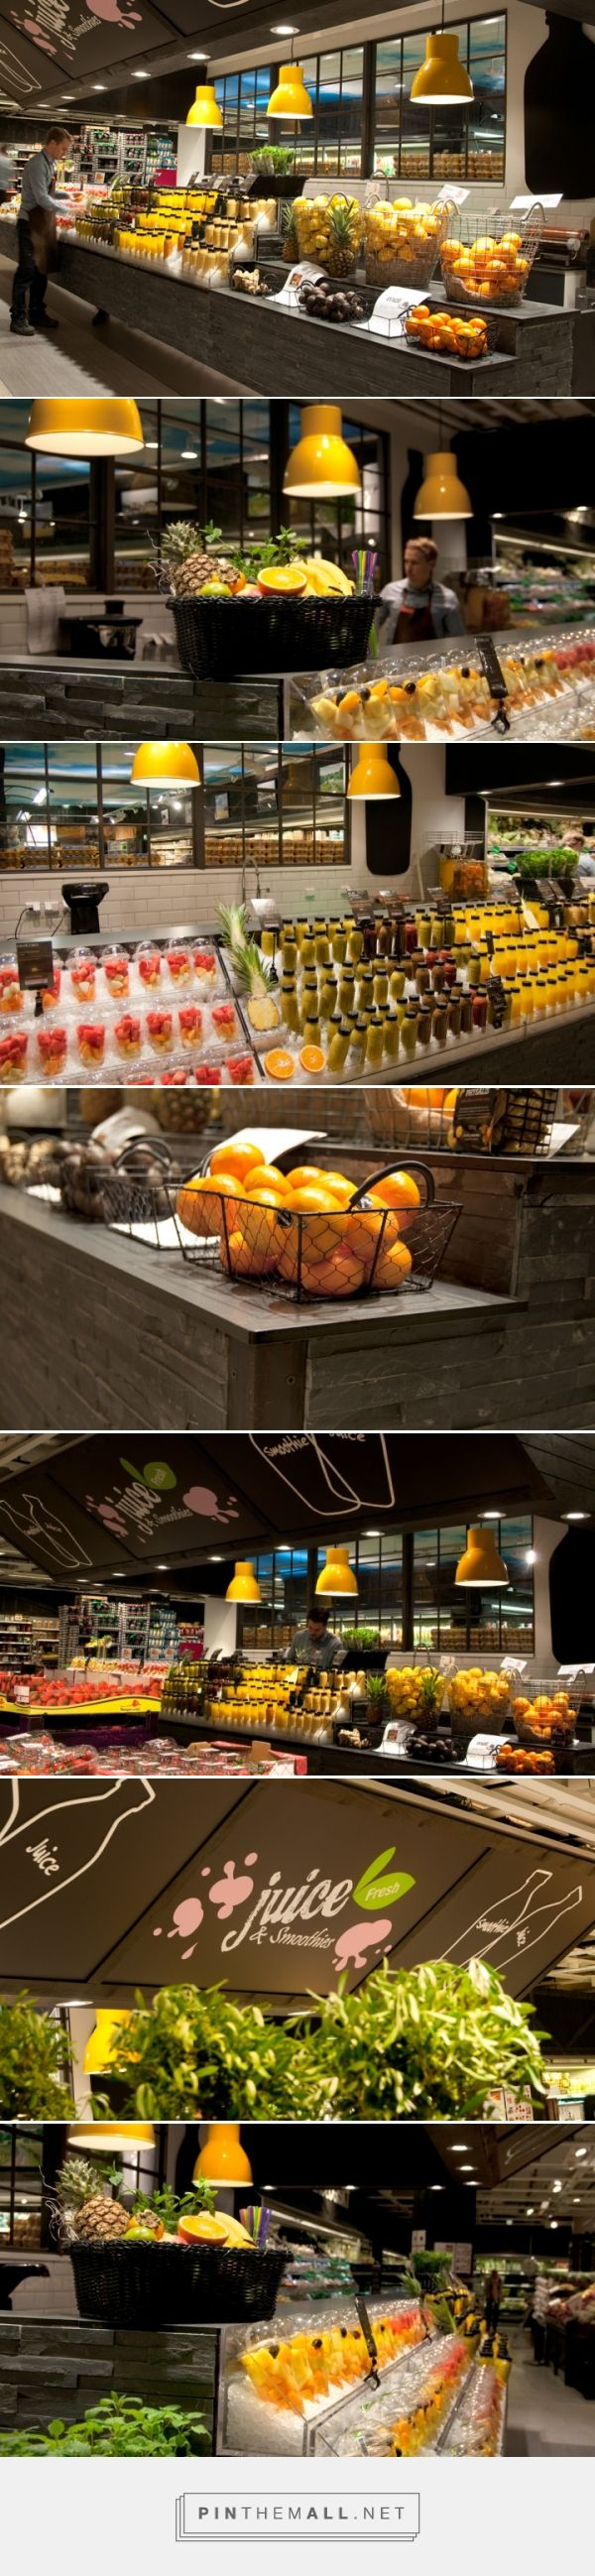 Ica liljeholmen juice smoothie bar by idei concepts ab for Raumgestaltung einzelhandel